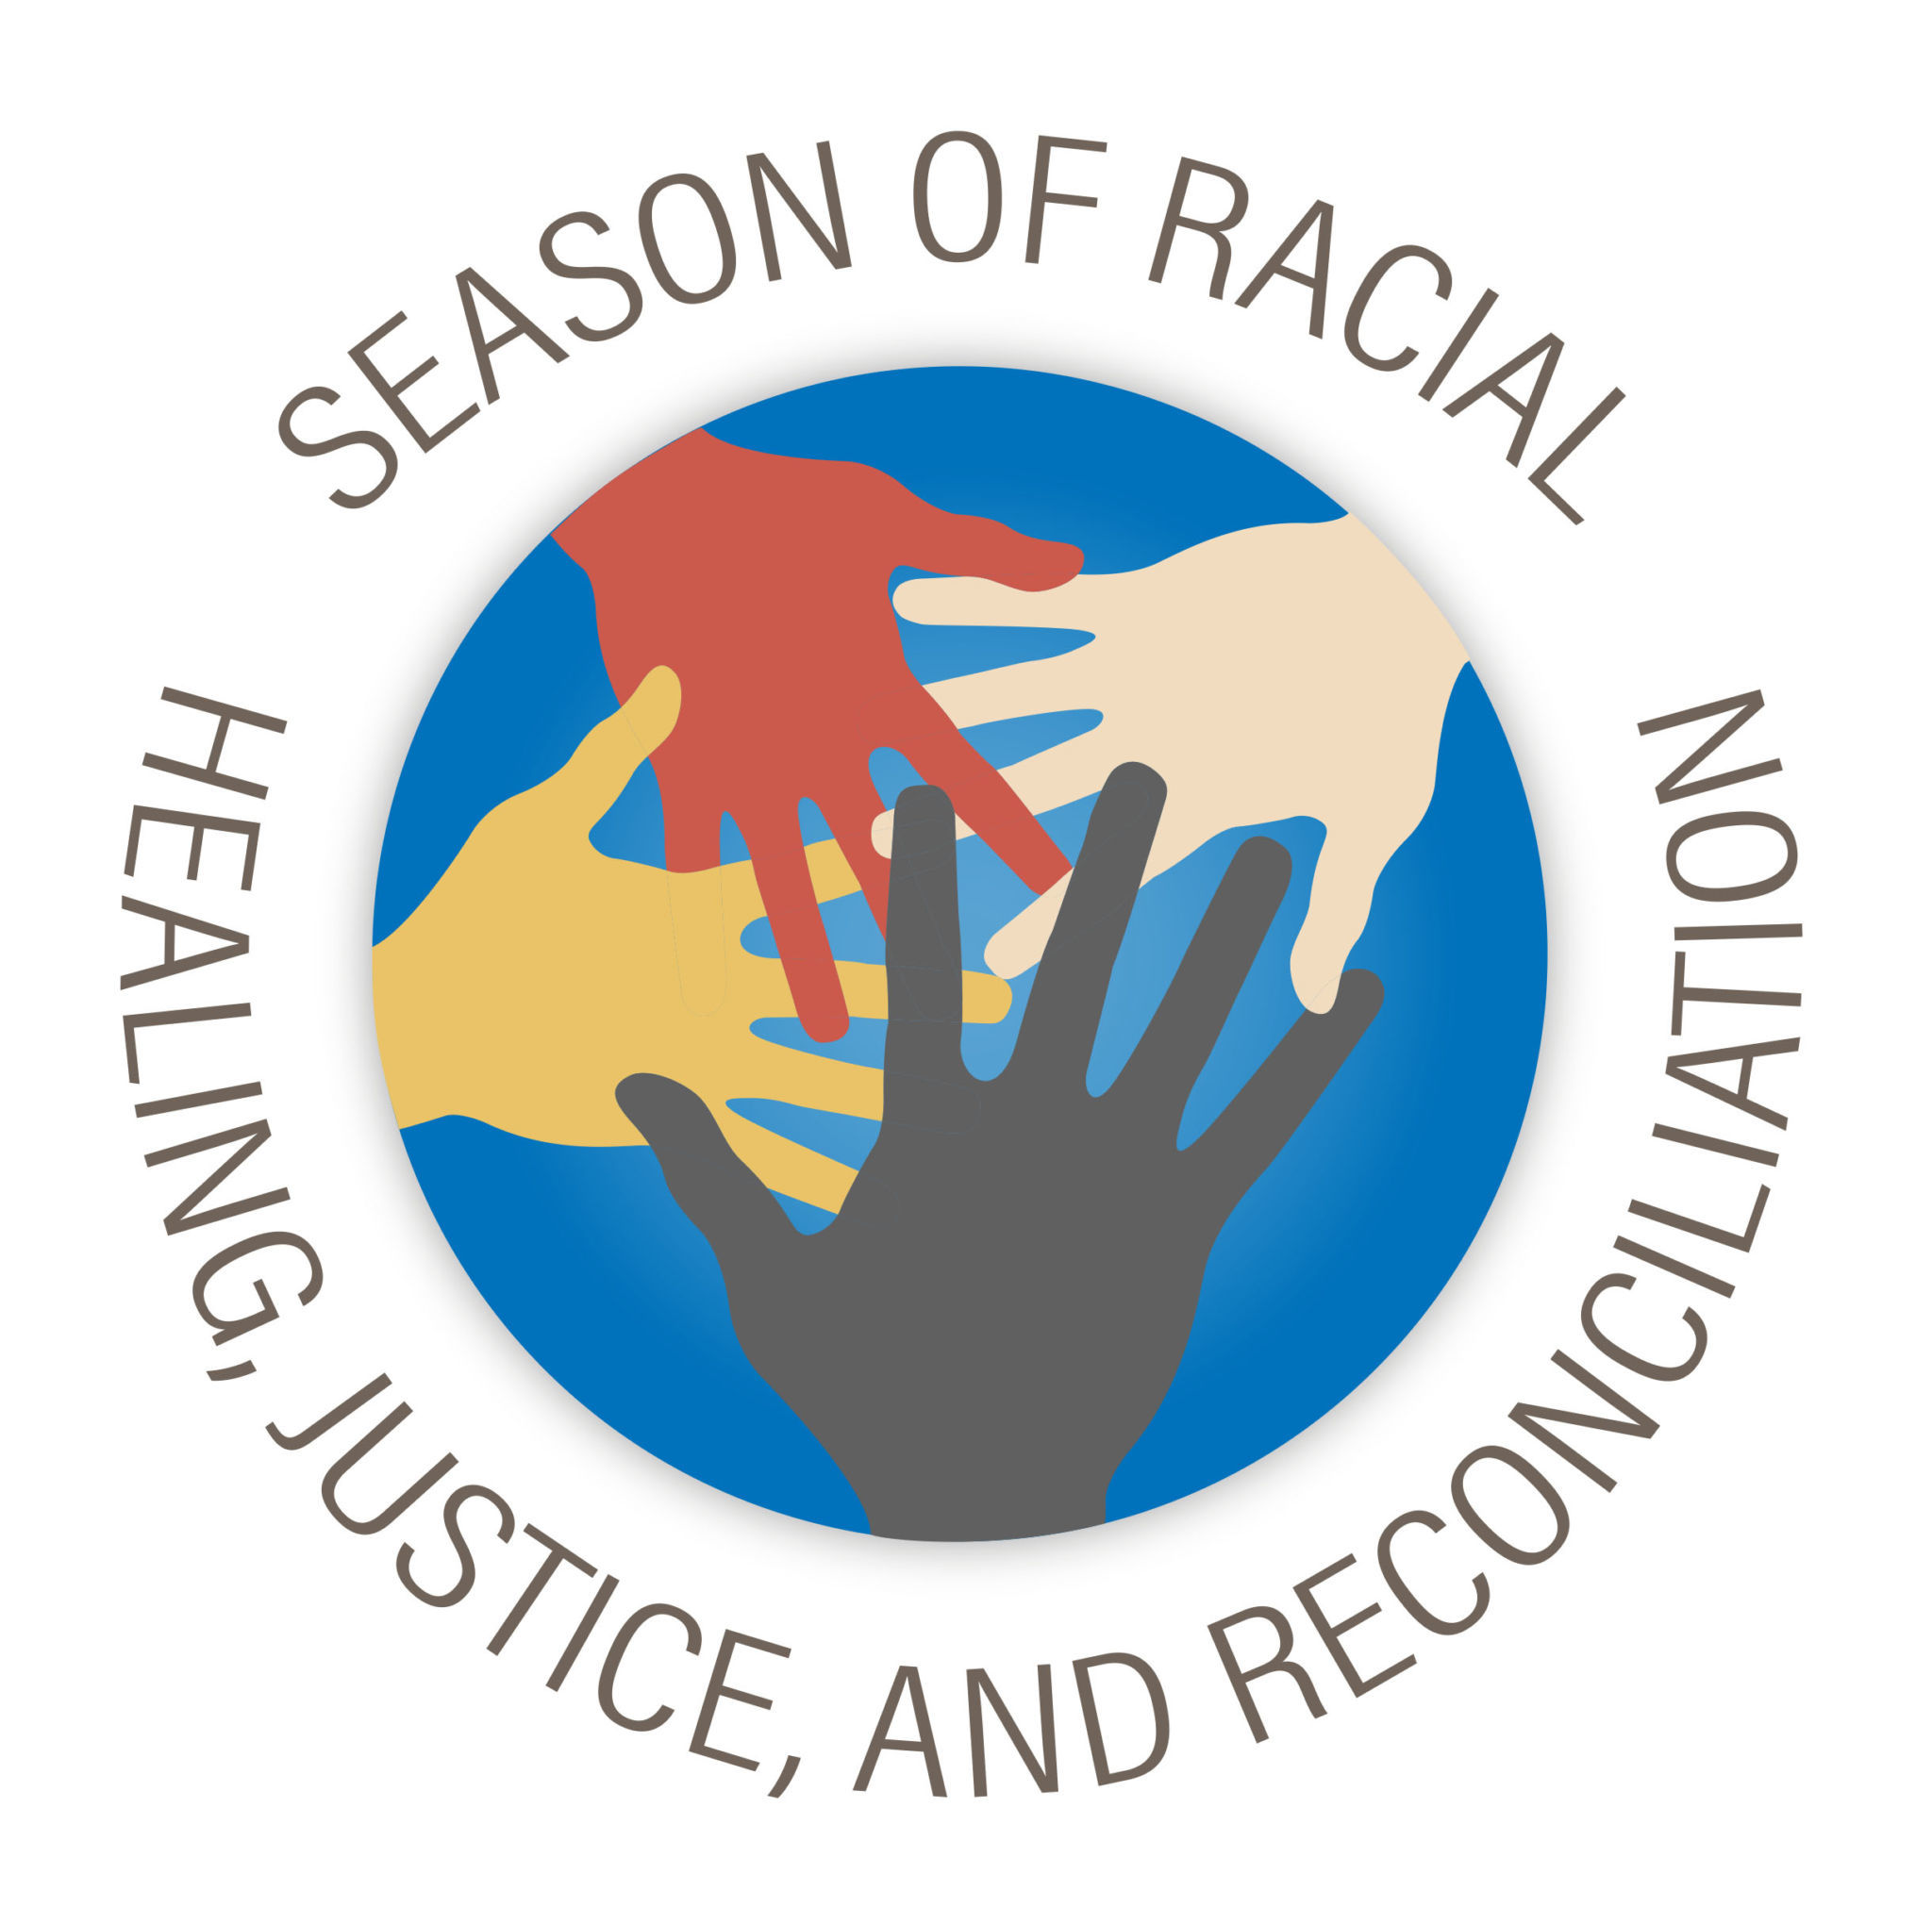 The Racial Healing, Justice, and Reconciliation Ministry Network pilgrimage to Washington D.C.